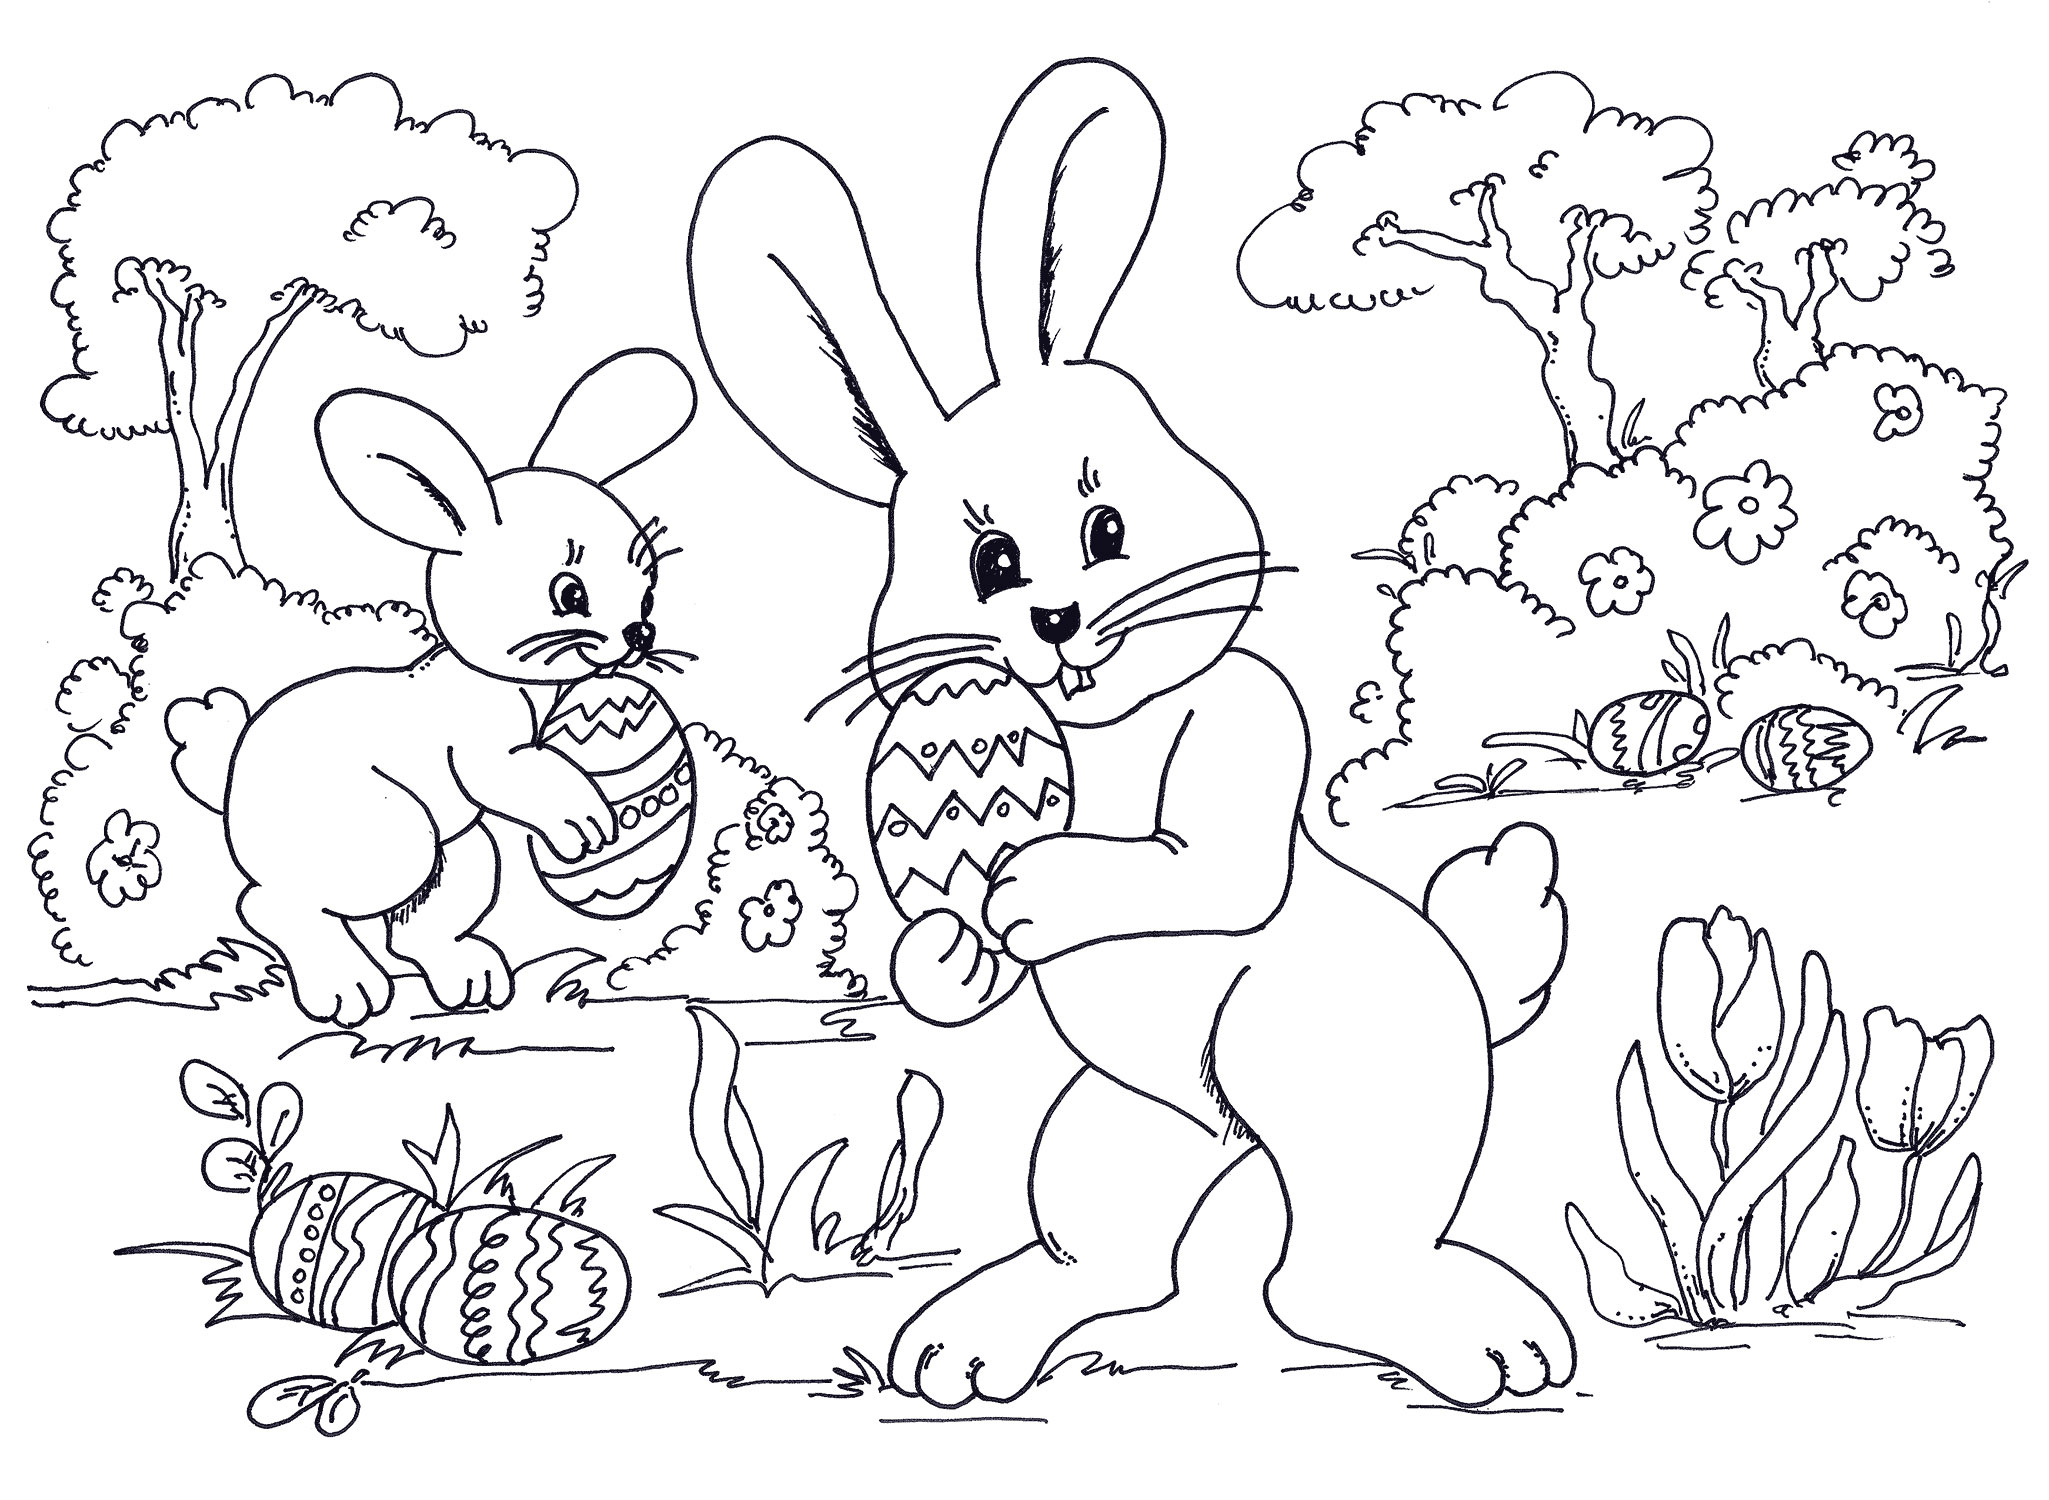 Free Easter Coloring Pages Easter Coloring Pages Best Coloring Pages to Print Of Easter Basket Coloring Pages to Print Gallery